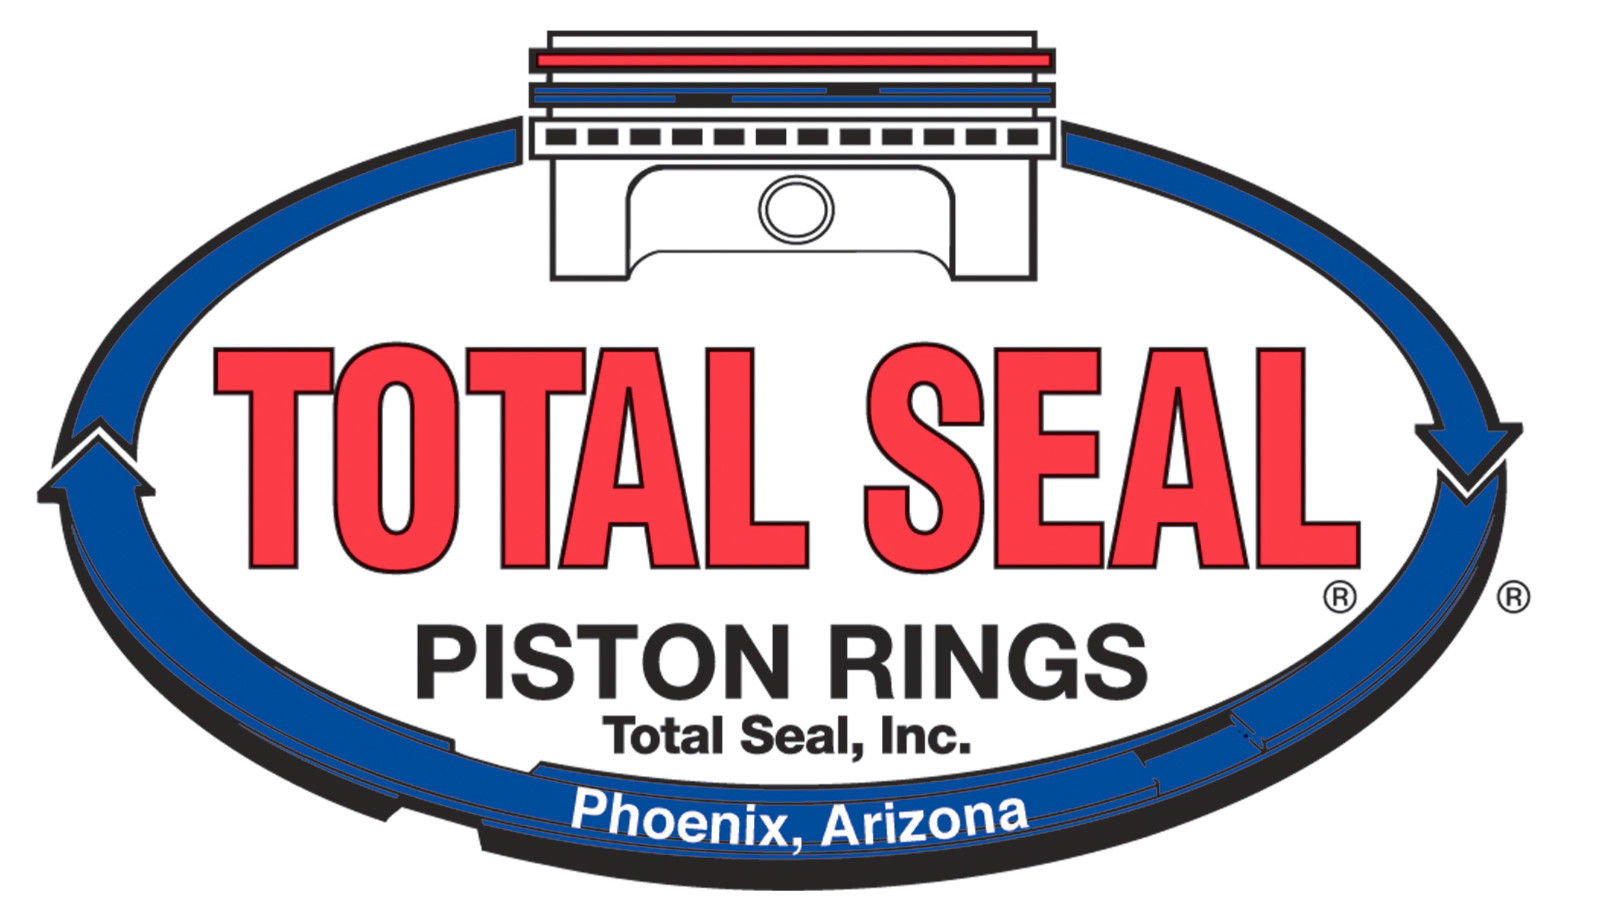 Total Seal CR9090-60 Classic Race Rings 4.060